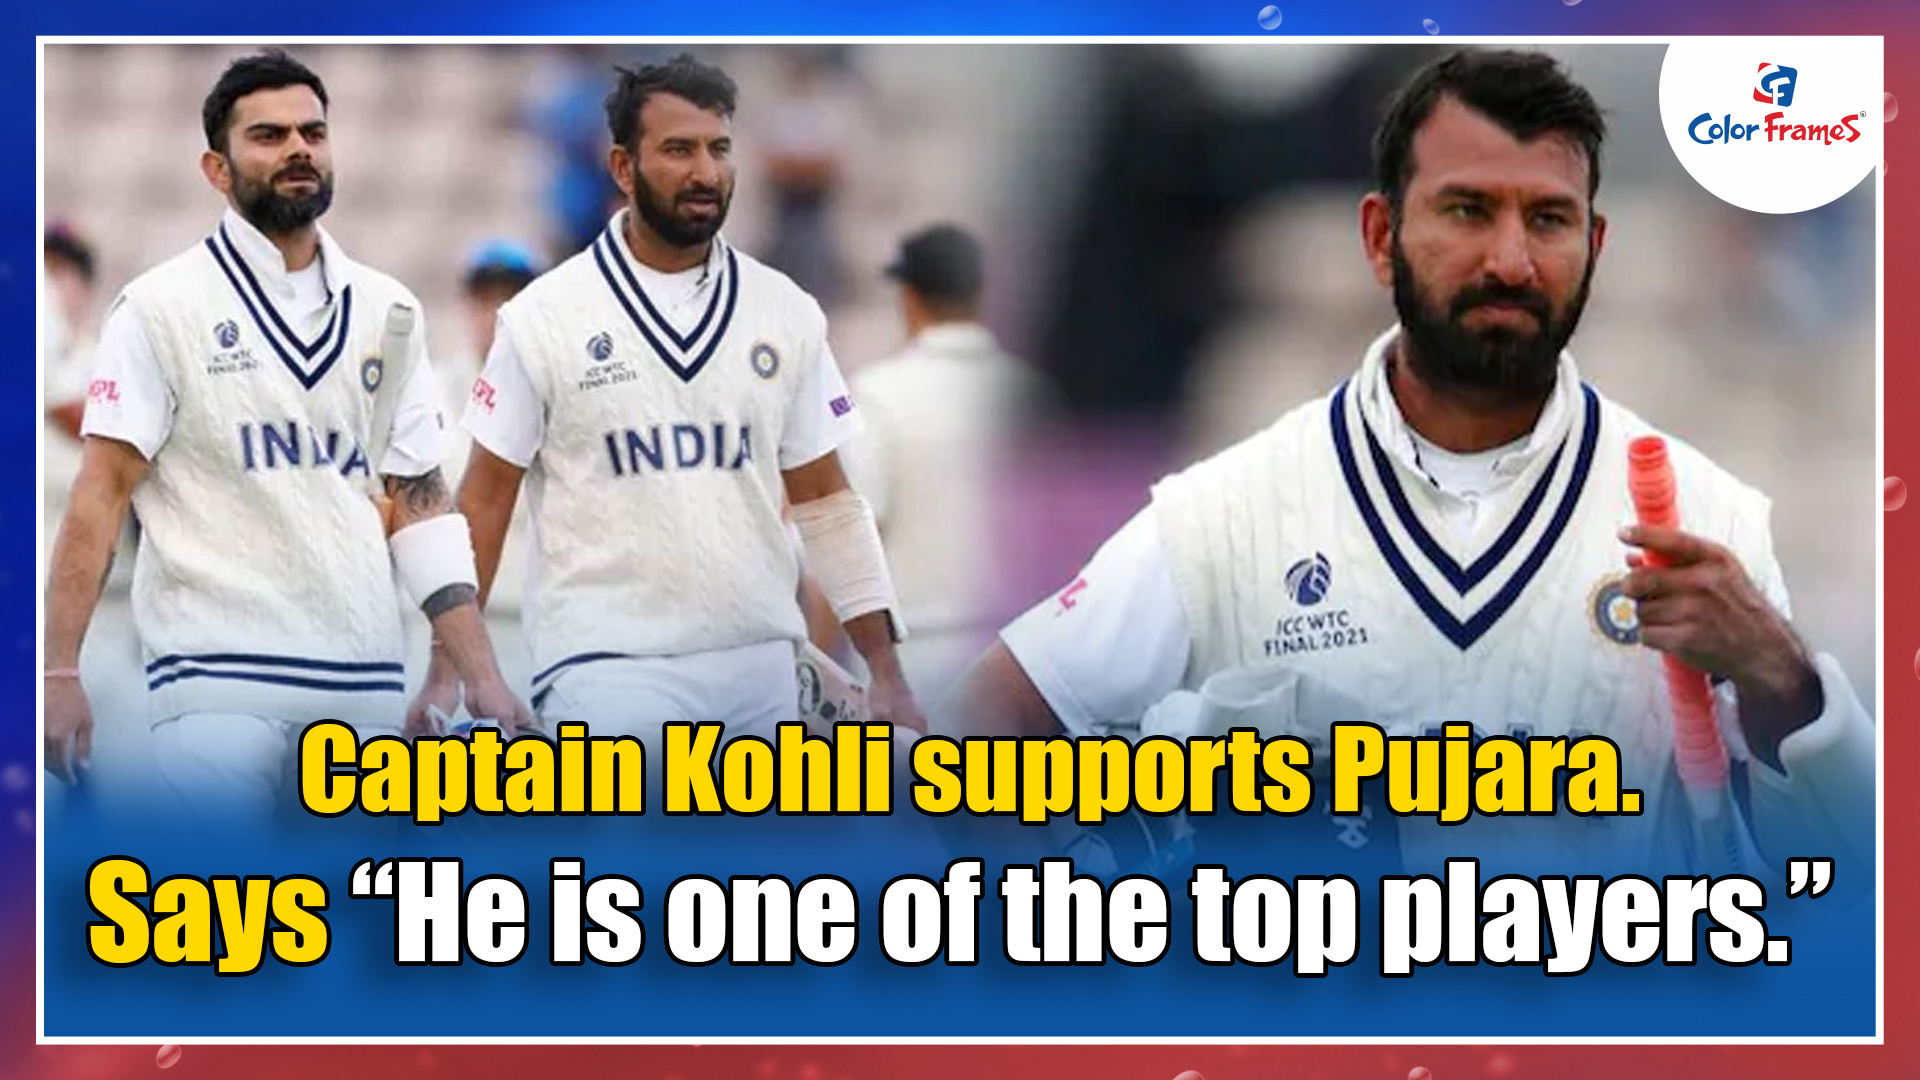 """Captain Kohli supports Pujara. Says """"He is one of the top players."""""""